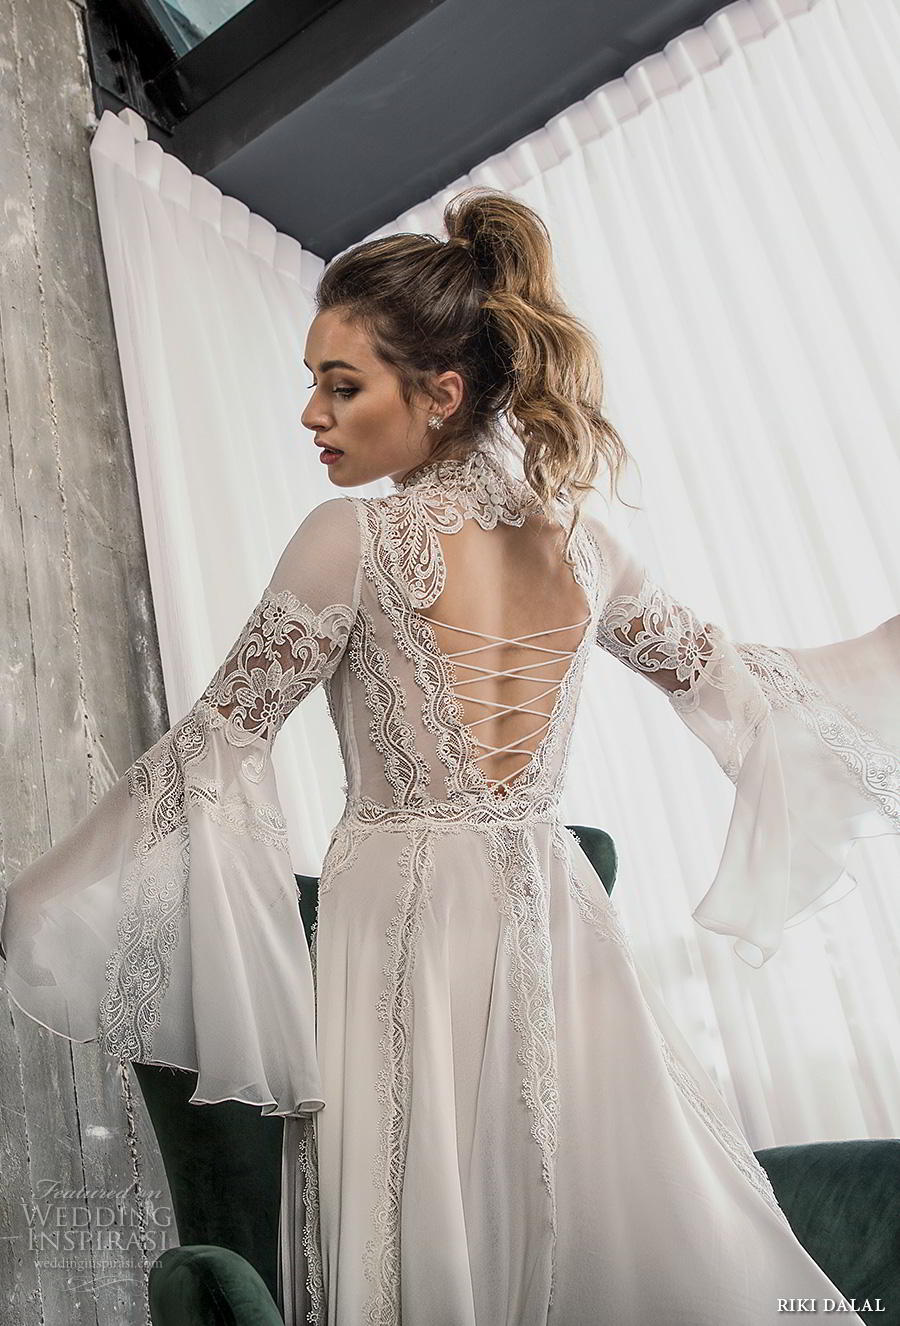 riki dalal 2018 glamour bridal long bell sleeves high neck heavily embellished bodice romantic bohemian a line wedding dress cross strap back sweep train (4) zbv